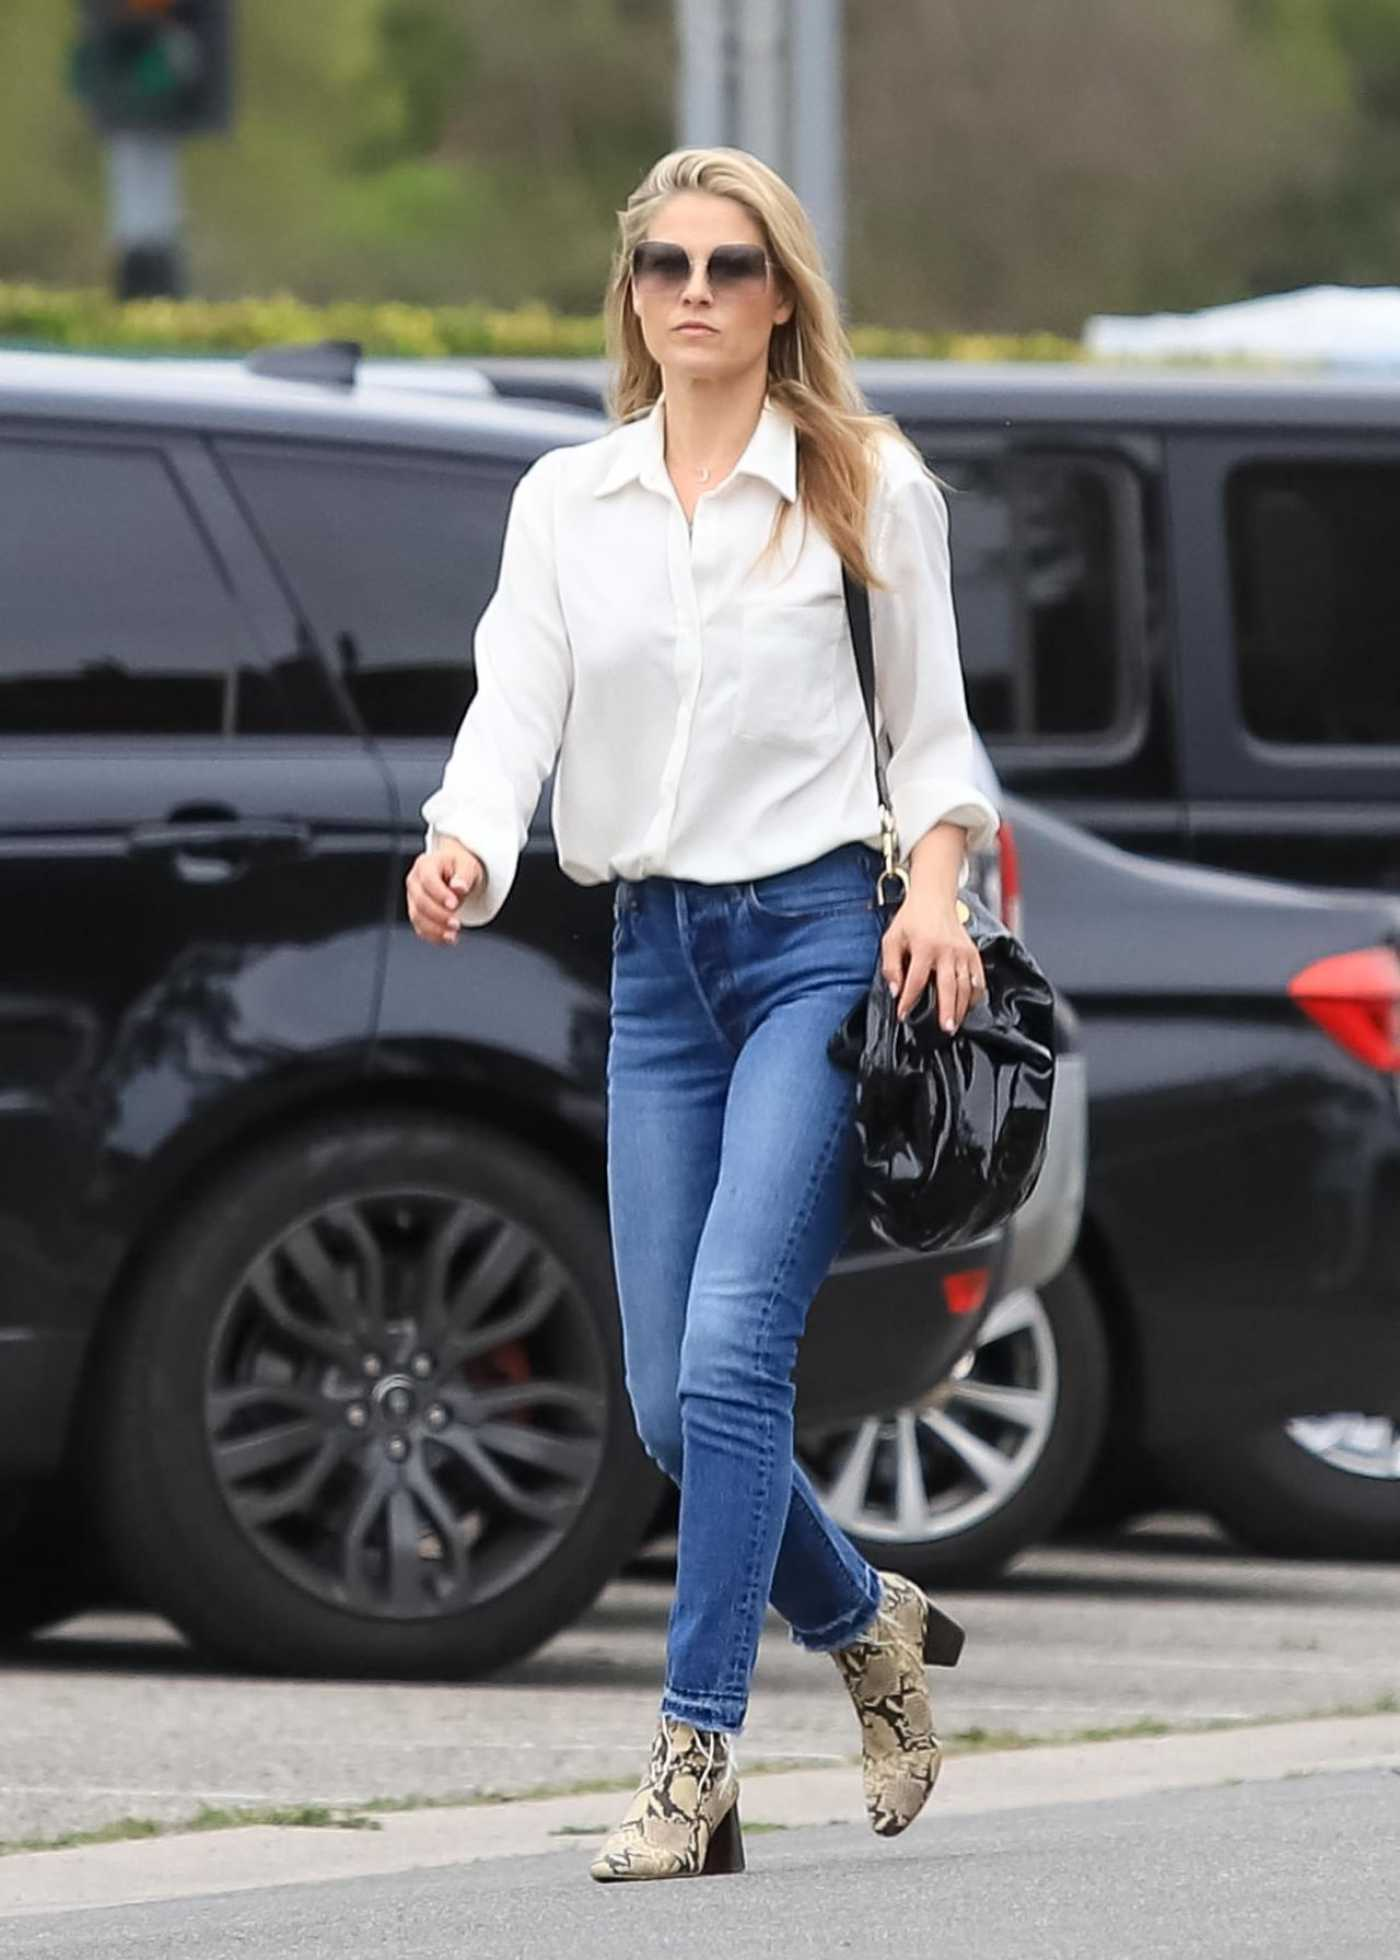 Ali Larter in a White Shirt Leaves a Hair Salon in Beverly Hills 02/27/2020